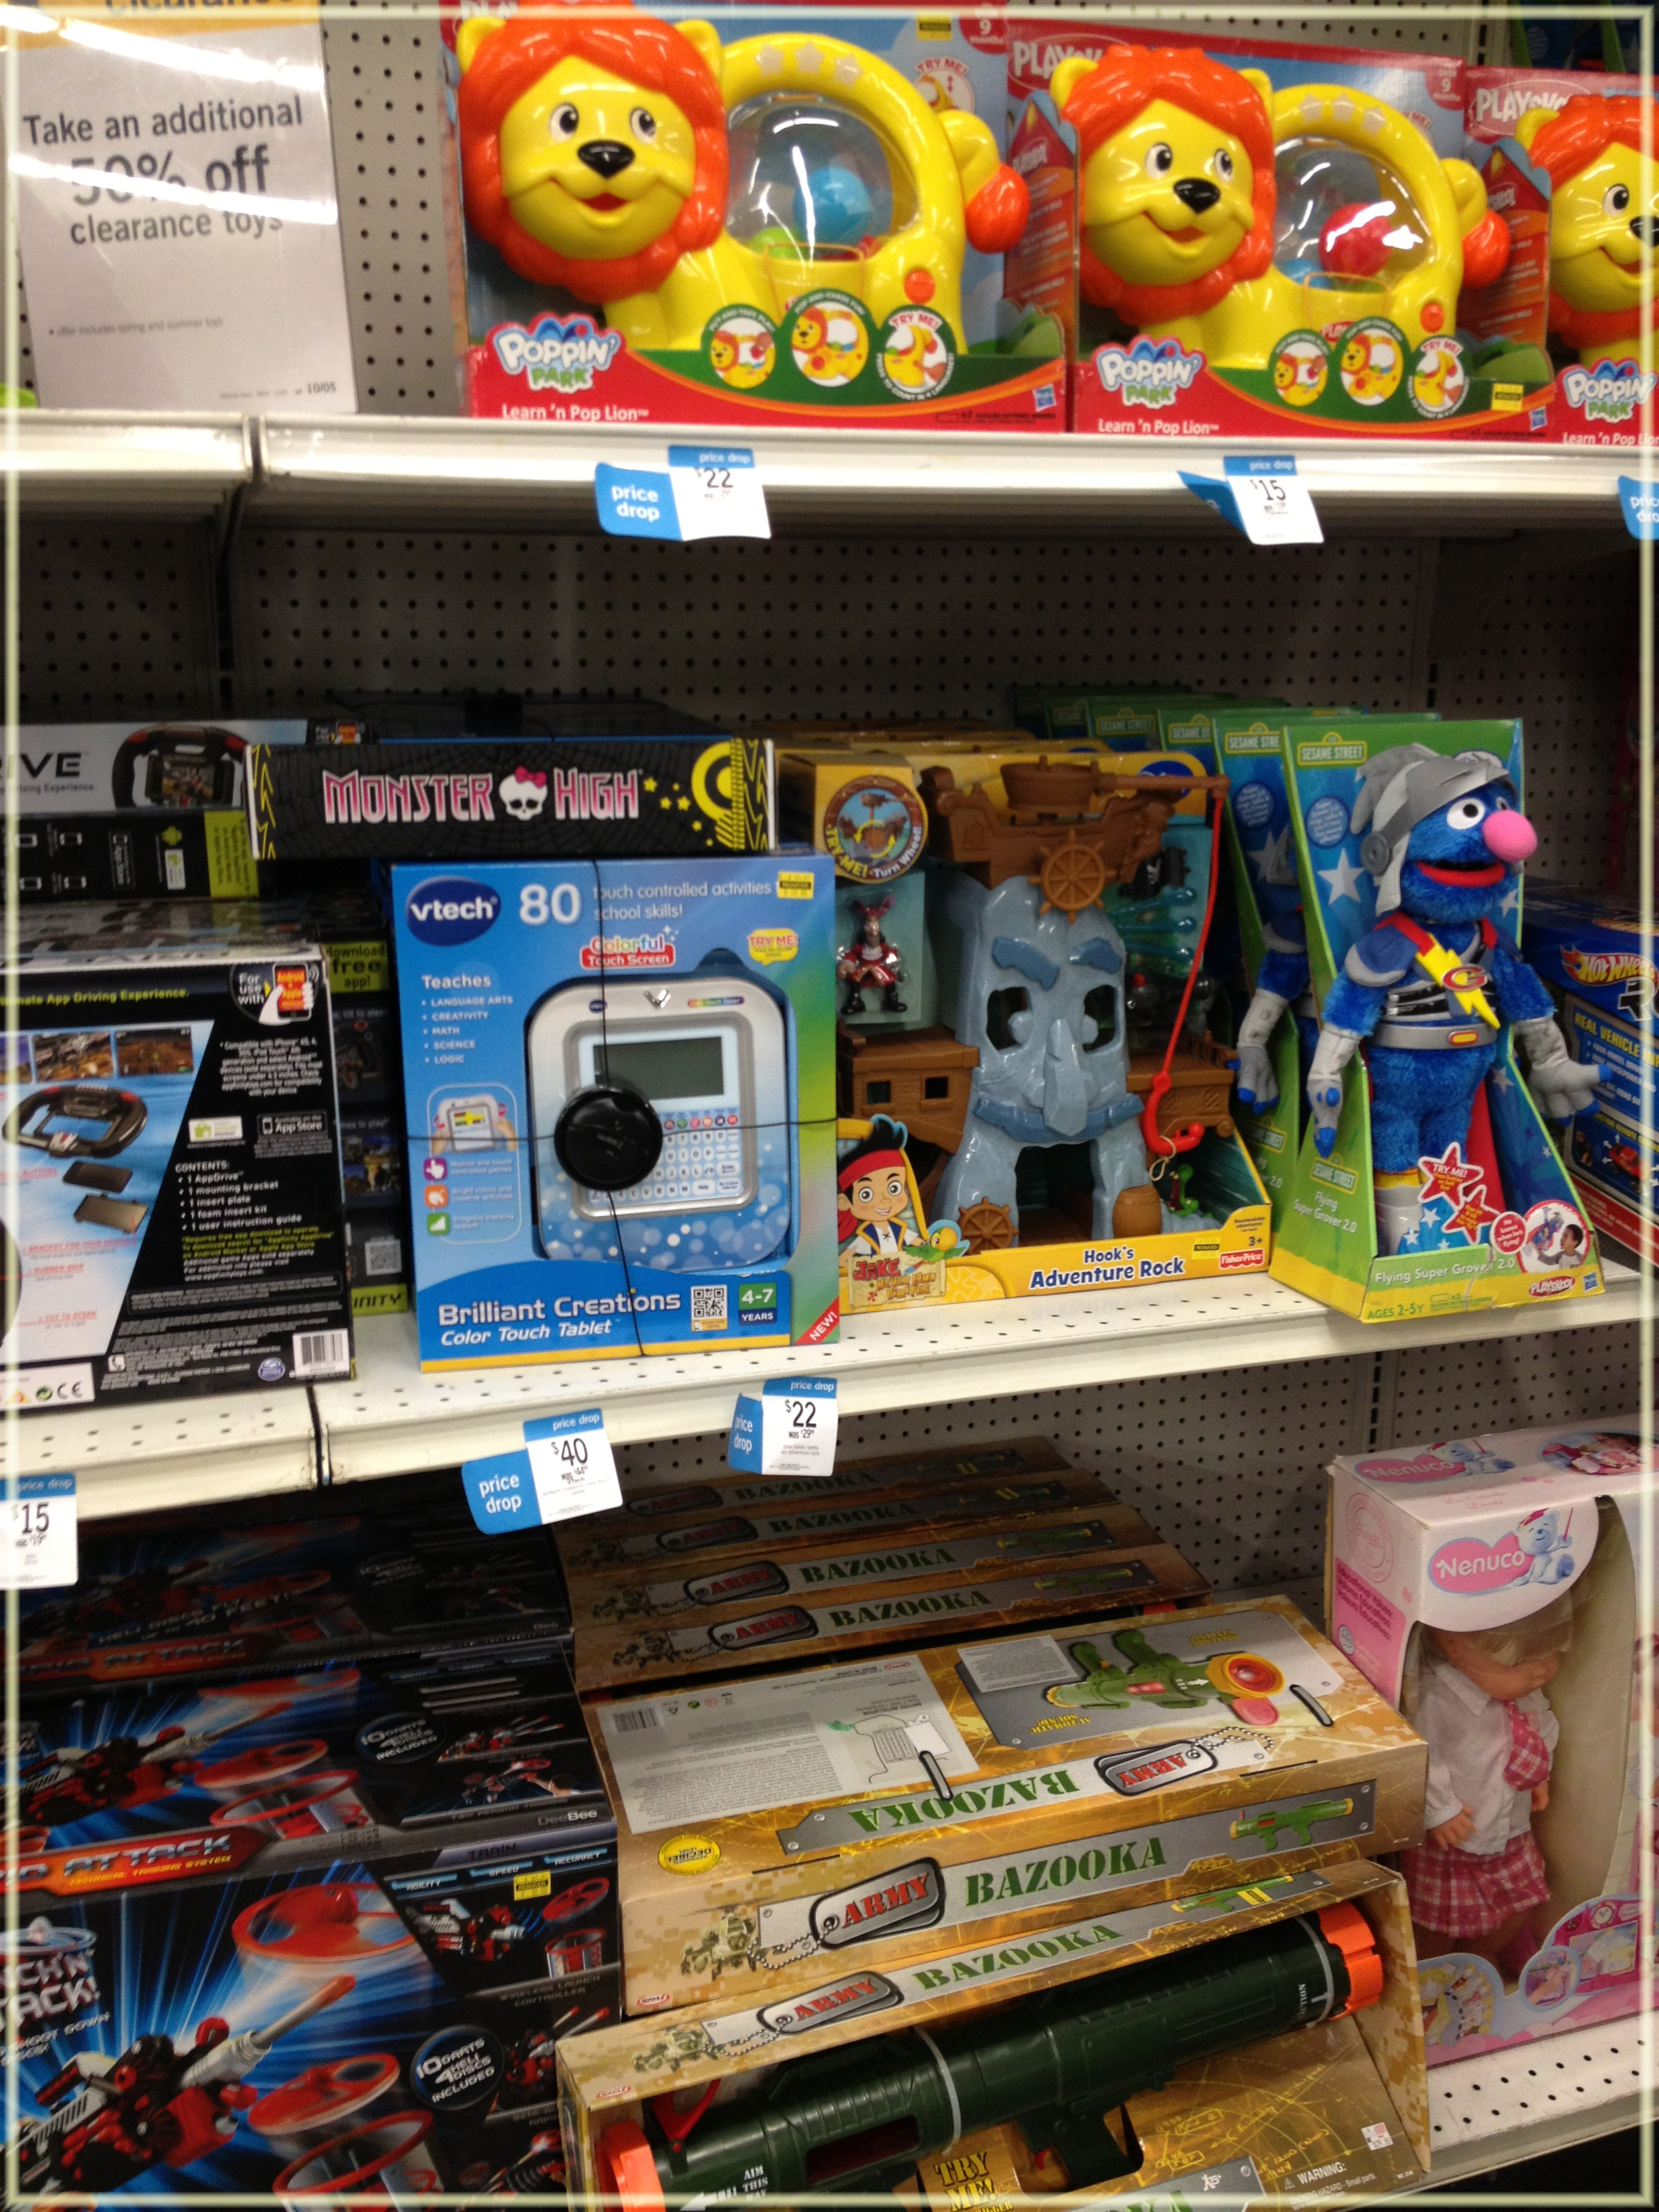 Kmart Toys For Boys : The best of kmart toys for boys images children ideas